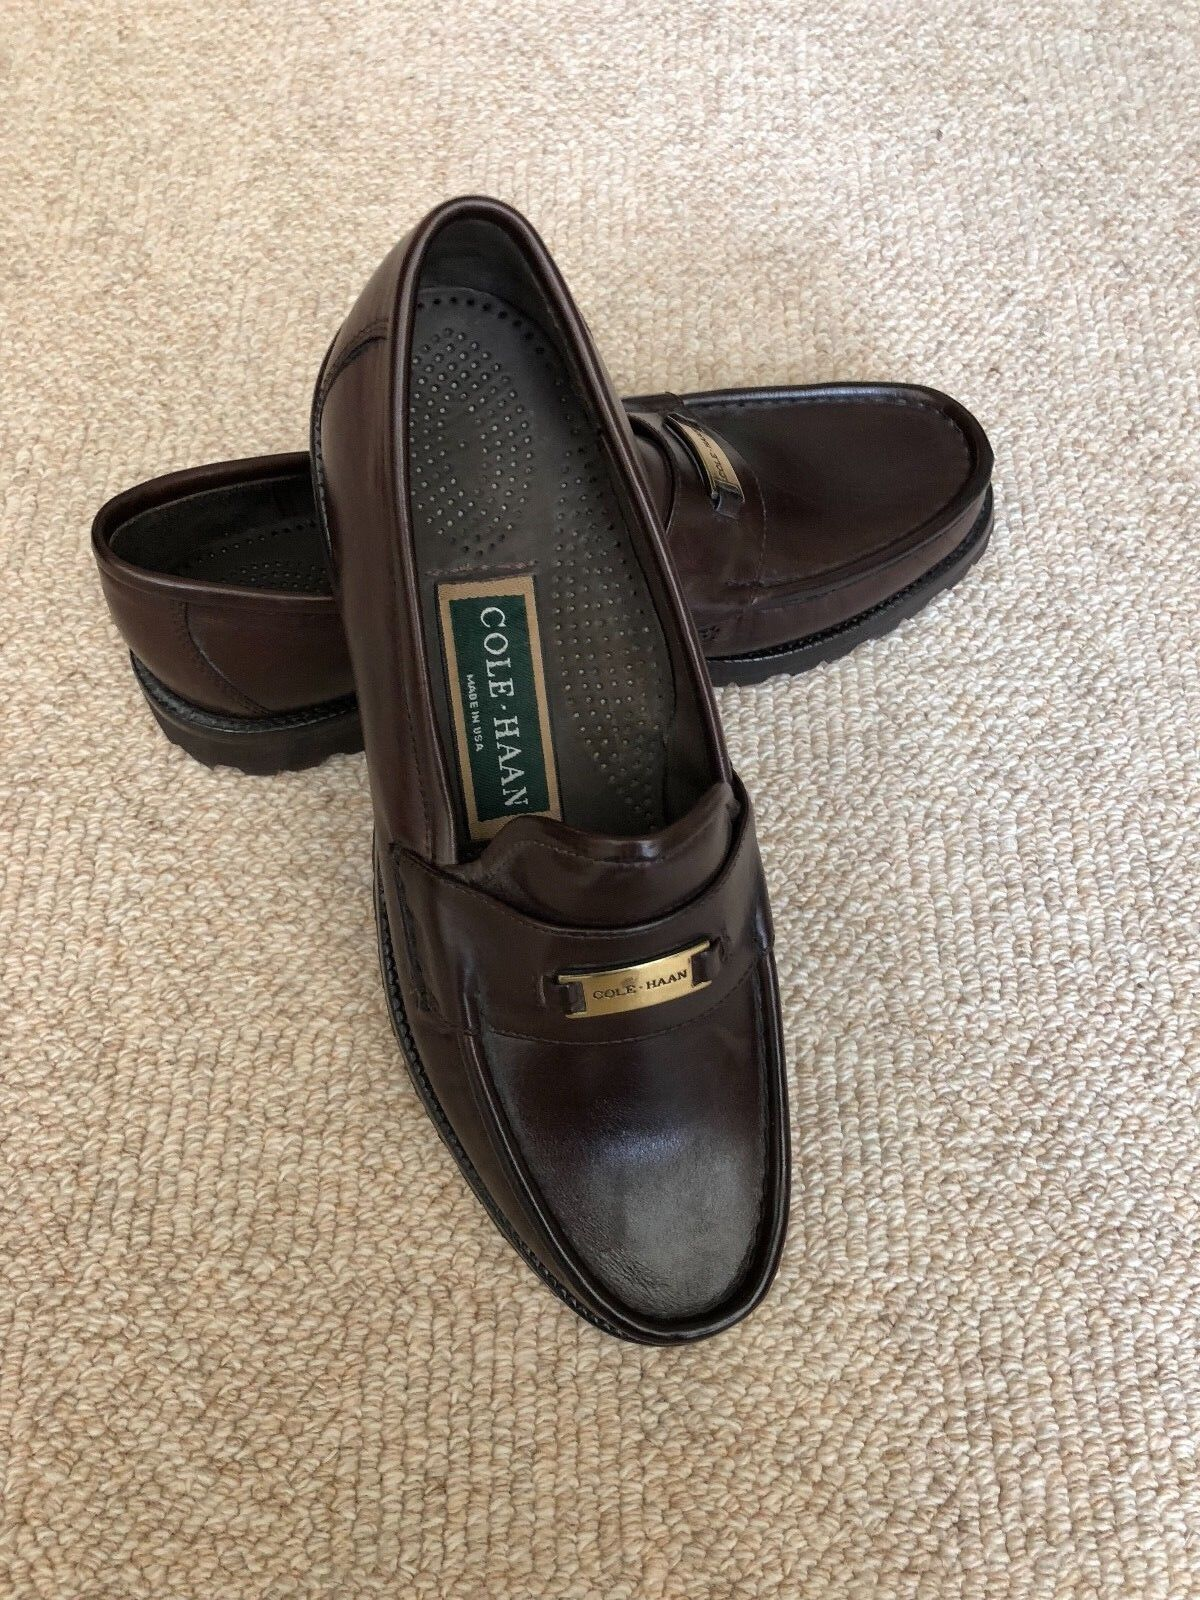 NWOB Cole Haan Oxford Coloree Slip  On Leather Loafer Moccasin scarpe Dimensione 7.5M  basta comprarlo